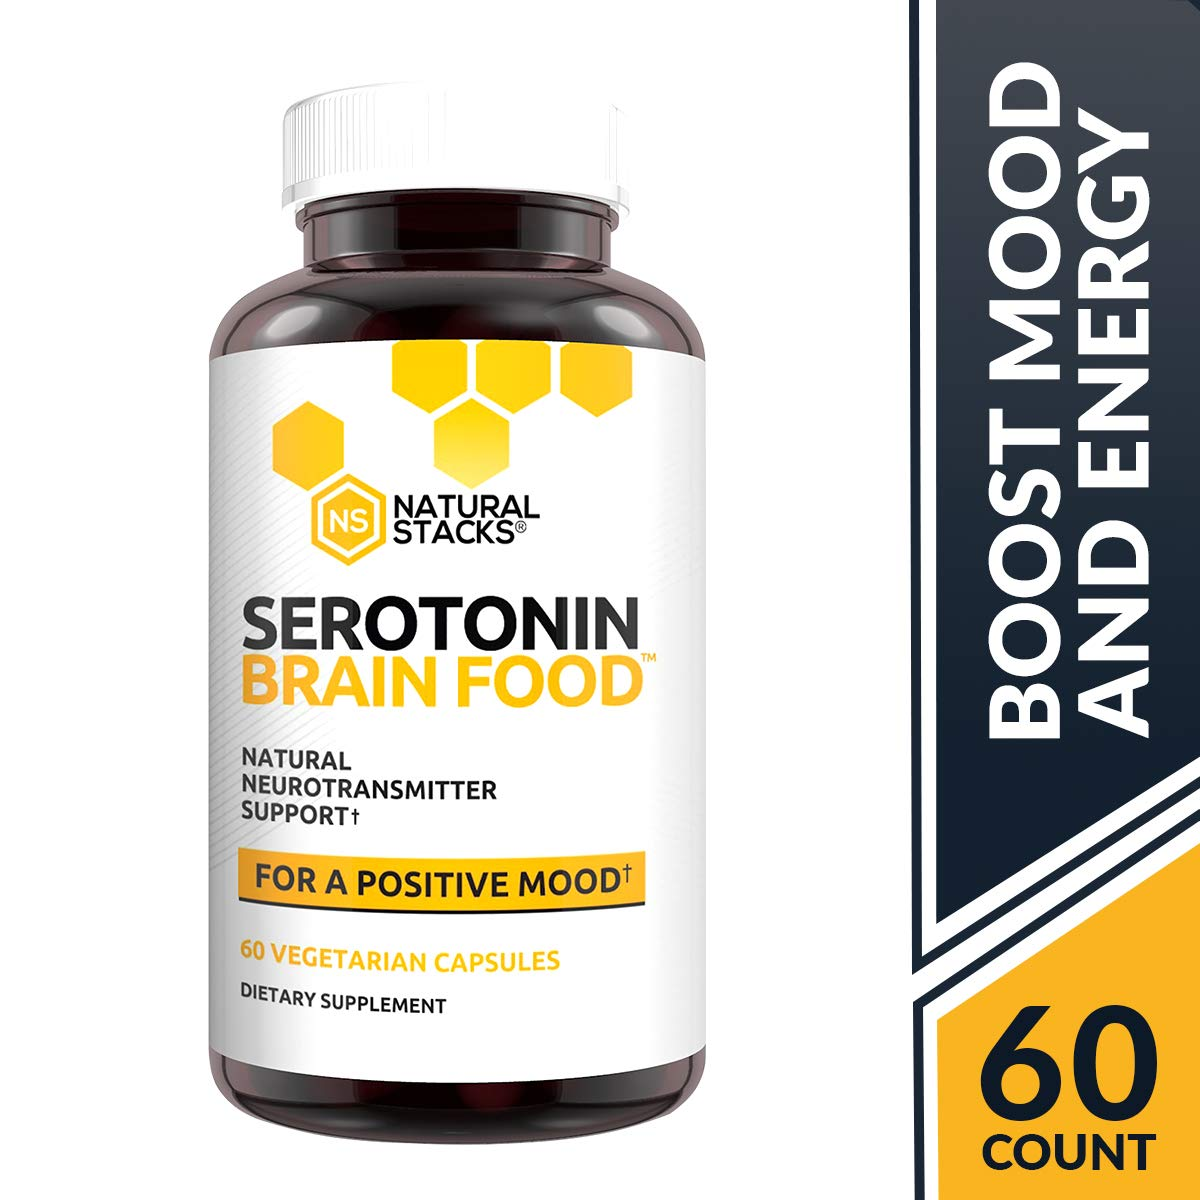 Natural Stacks: Serotonin Brain Food - Brain Supplement - 30 Day Supply - Promotes Healthy Serotonin Production - Formulated for Stress Relief - Made to Boost Mood and Energy by Natural Stacks